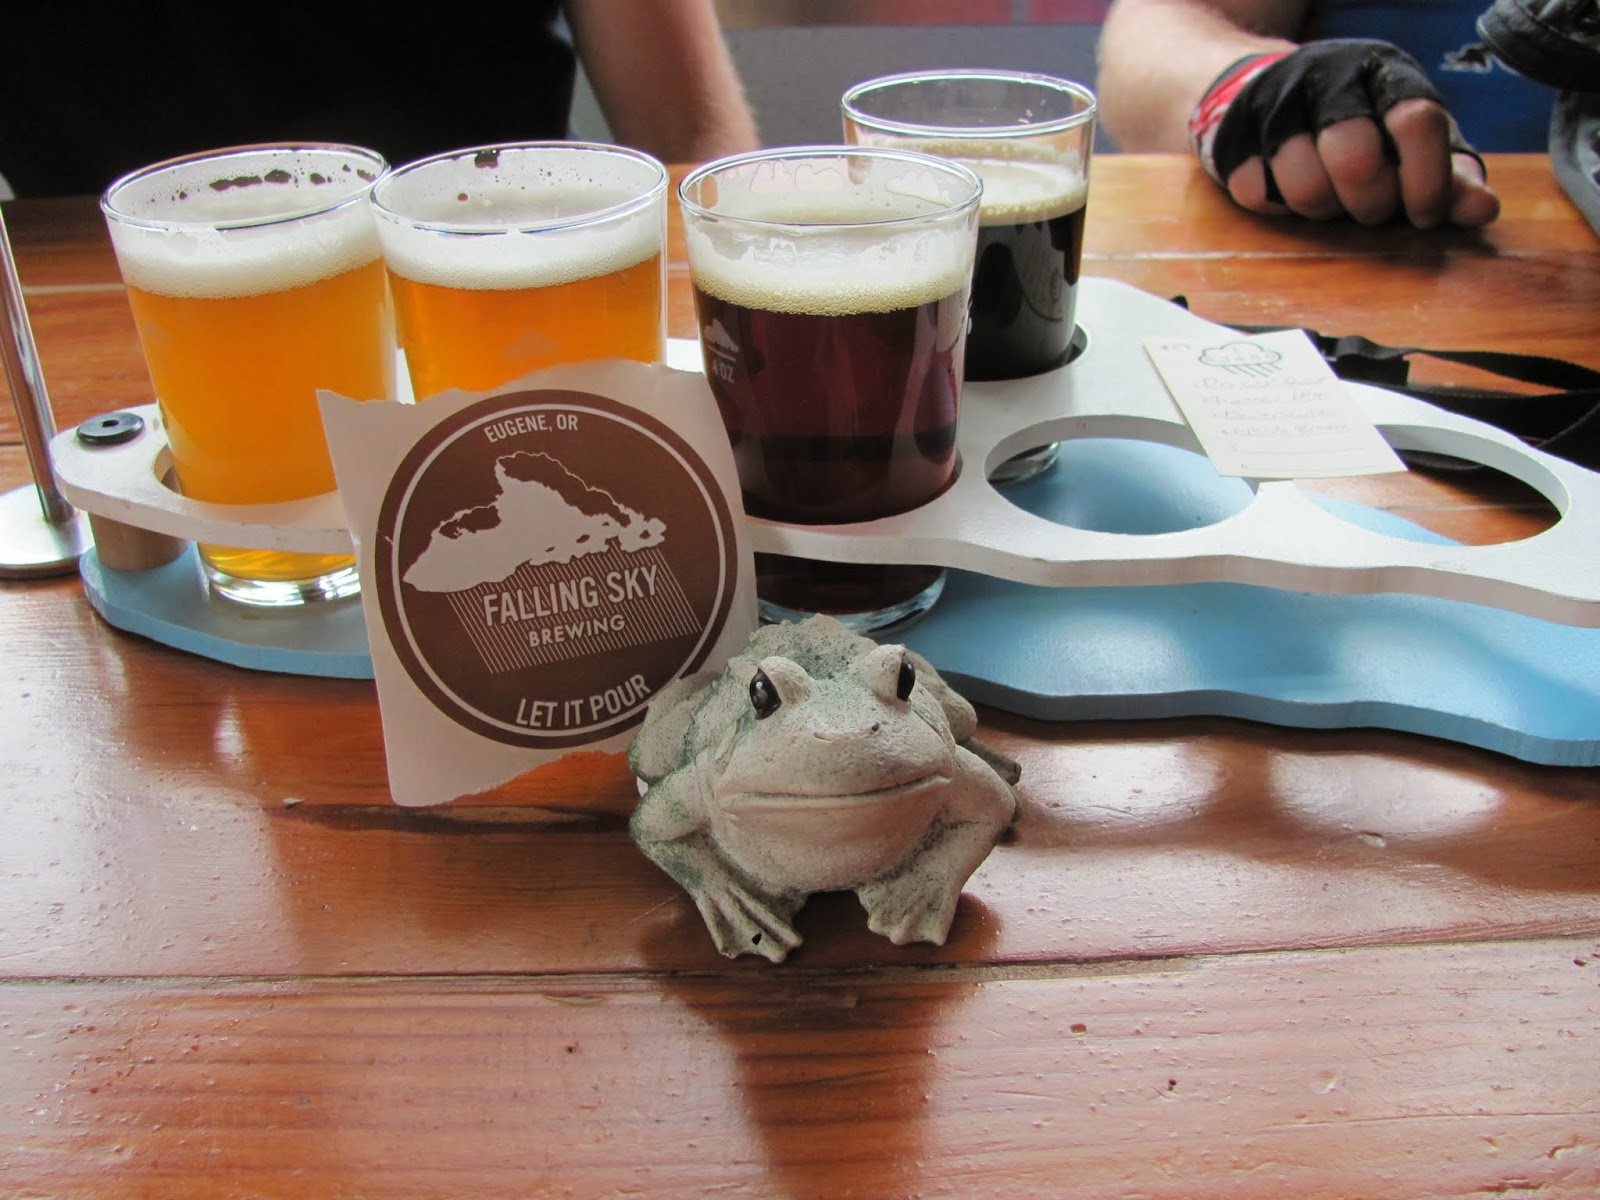 Frog poses with the flight of beverages at Falling Sky Brewery in Eugene, Oregon